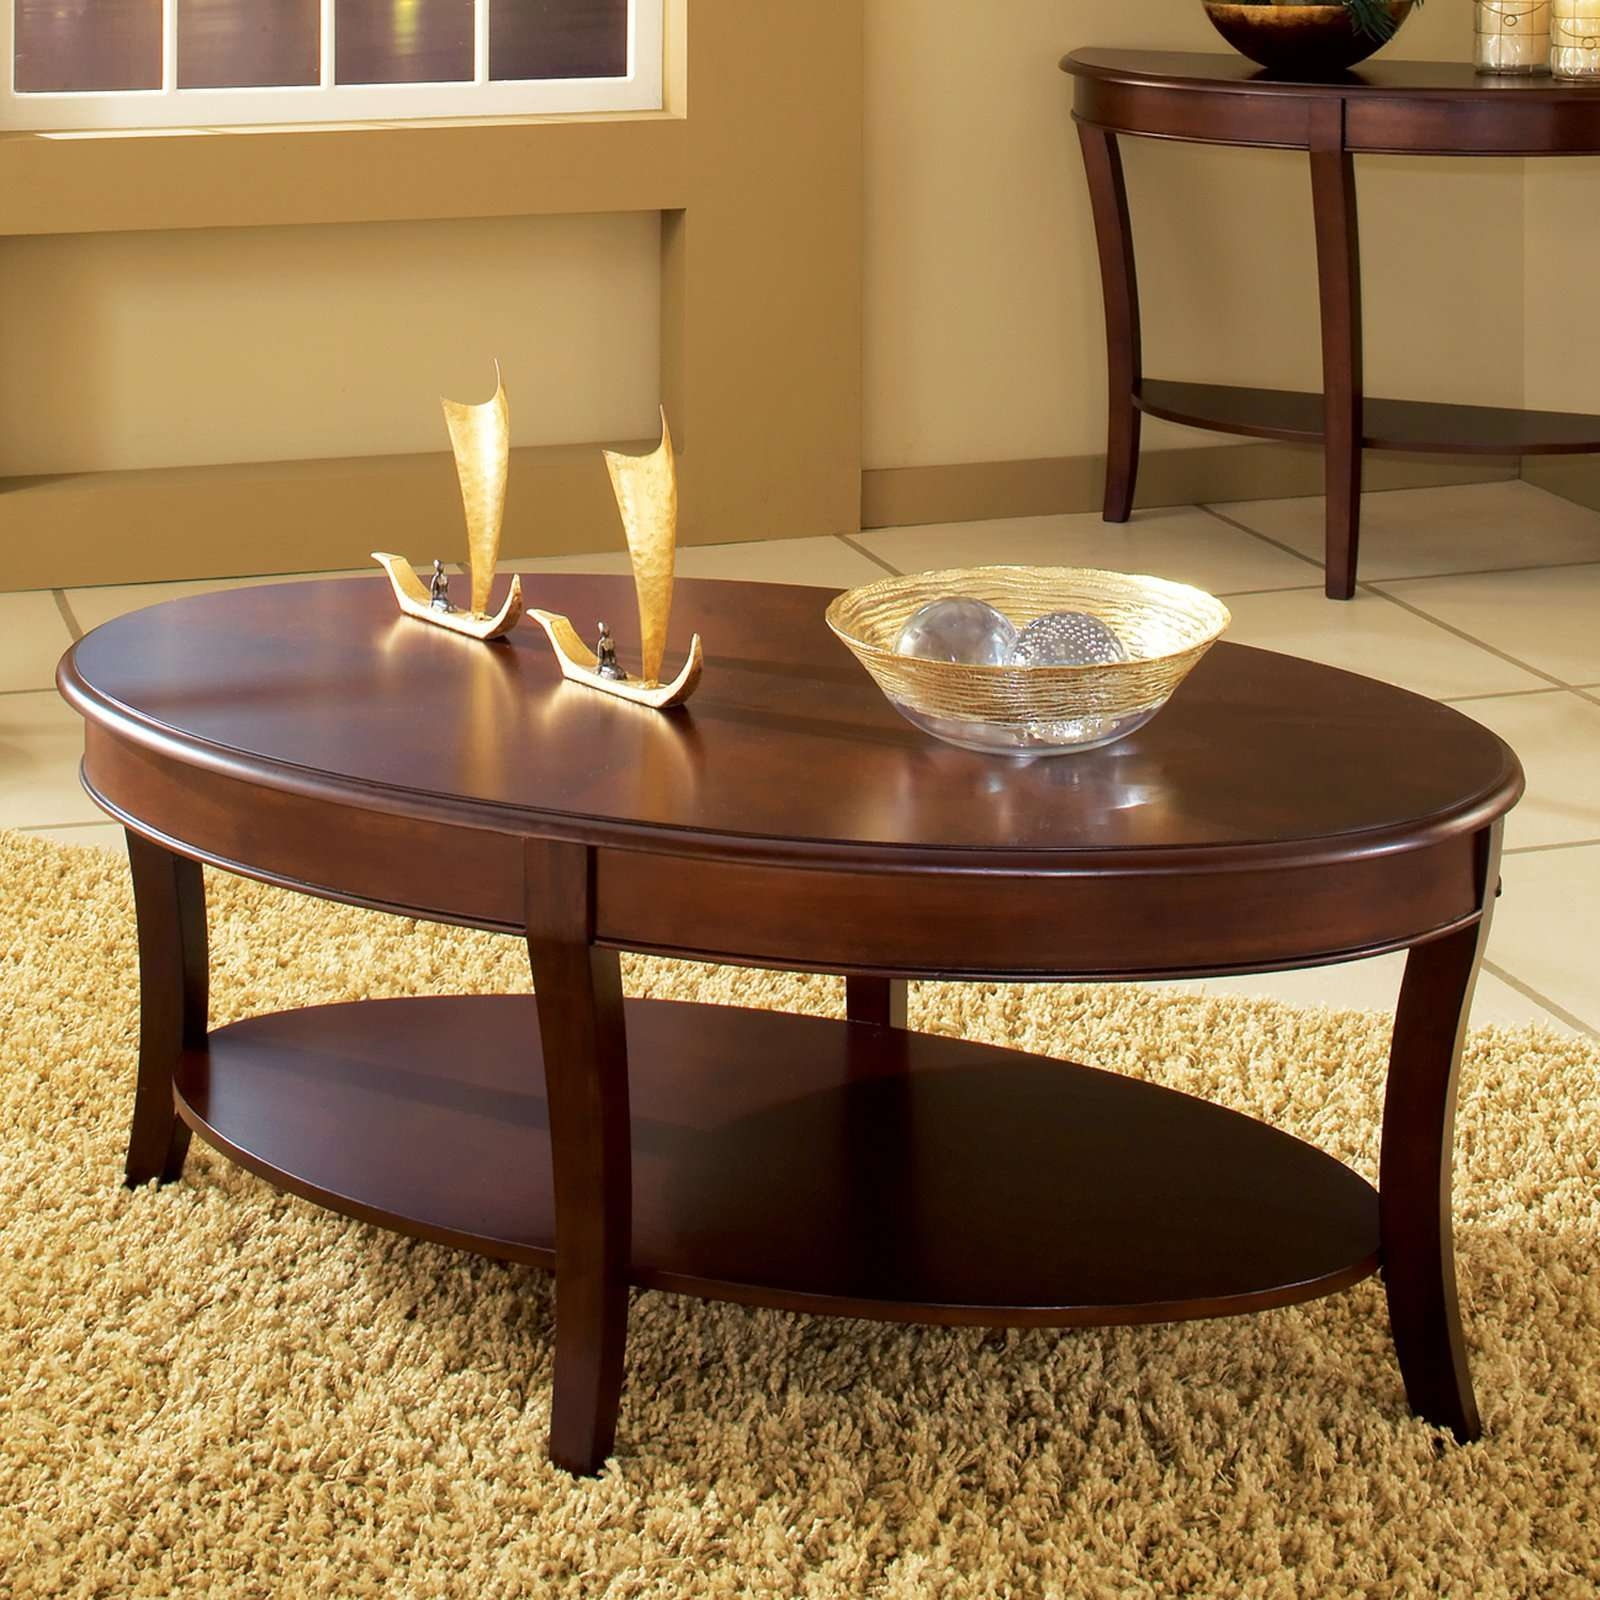 Oval Espresso Coffee Table: 20 Best Collection Of Oval Wooden Coffee Tables